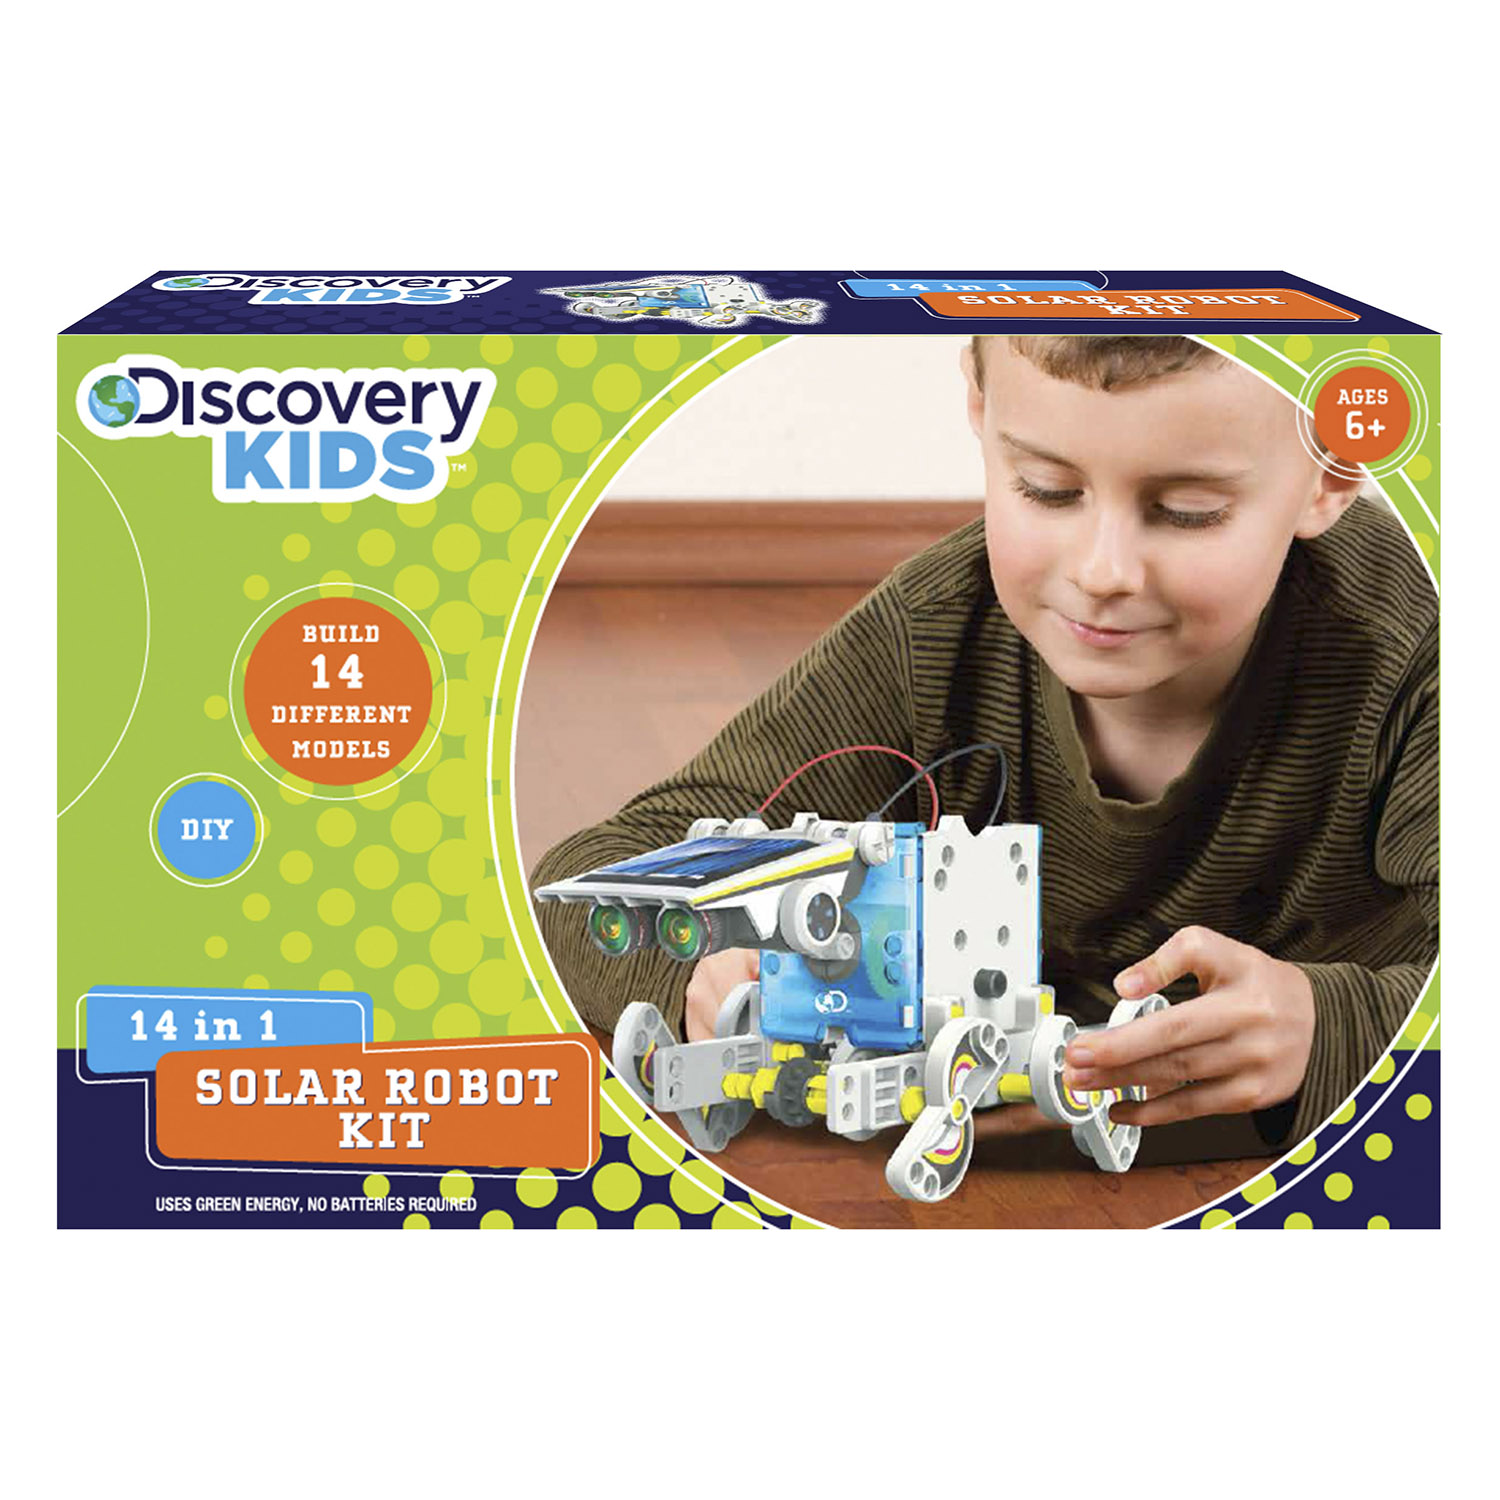 Discovery Kids 14-in-1 Solar Robot Kit